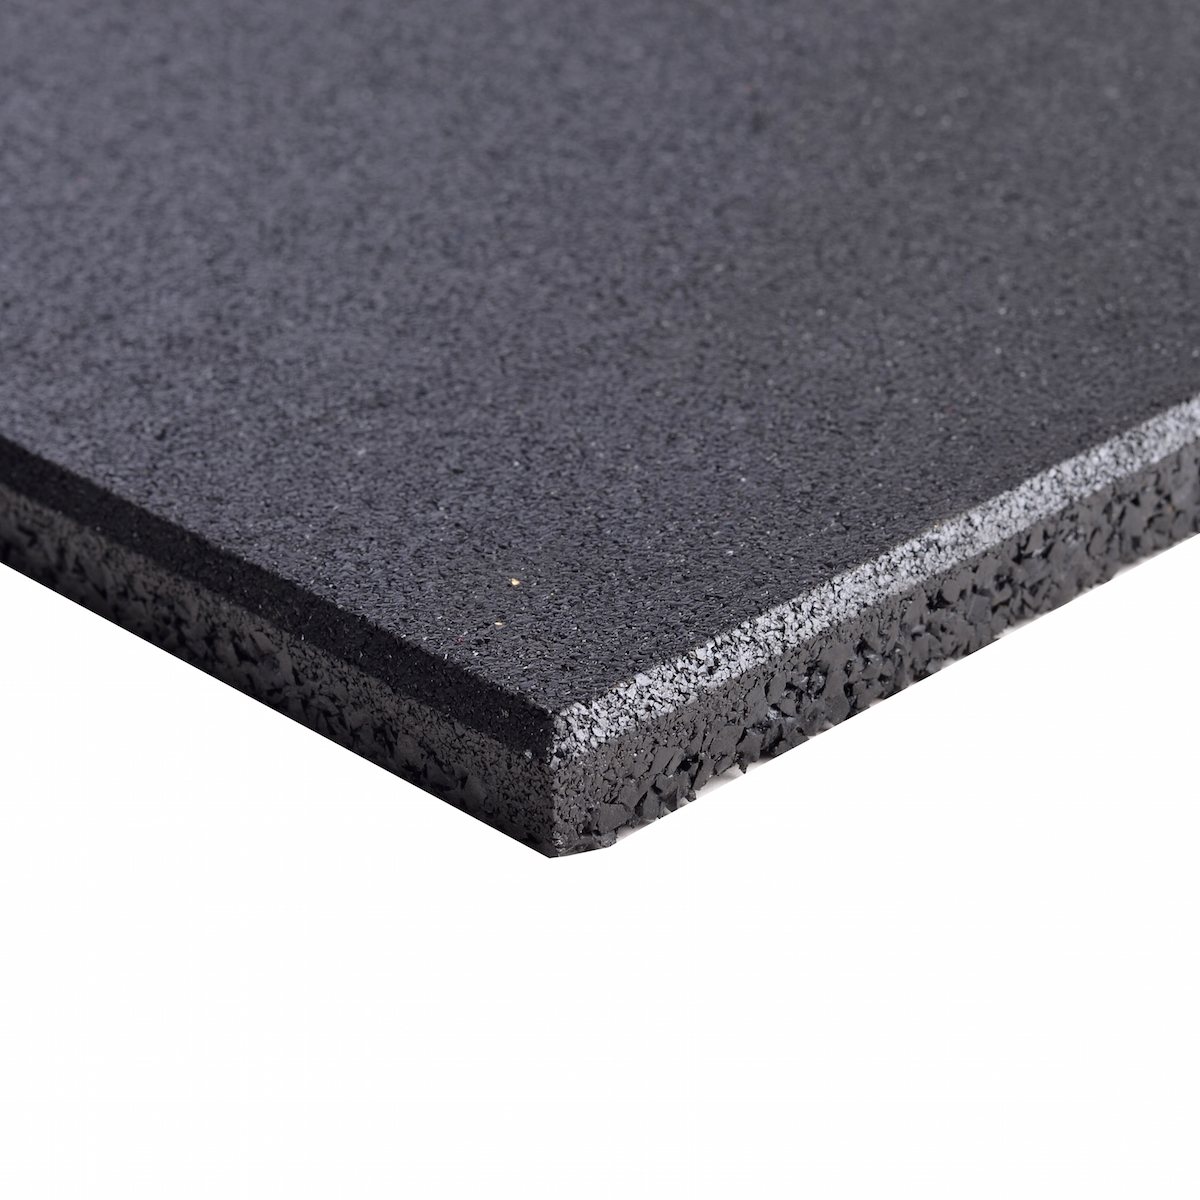 anti and skirting rubber offers of kitchen premier range mats tire wide supply sheet materials sound products control a fatigue including recycled